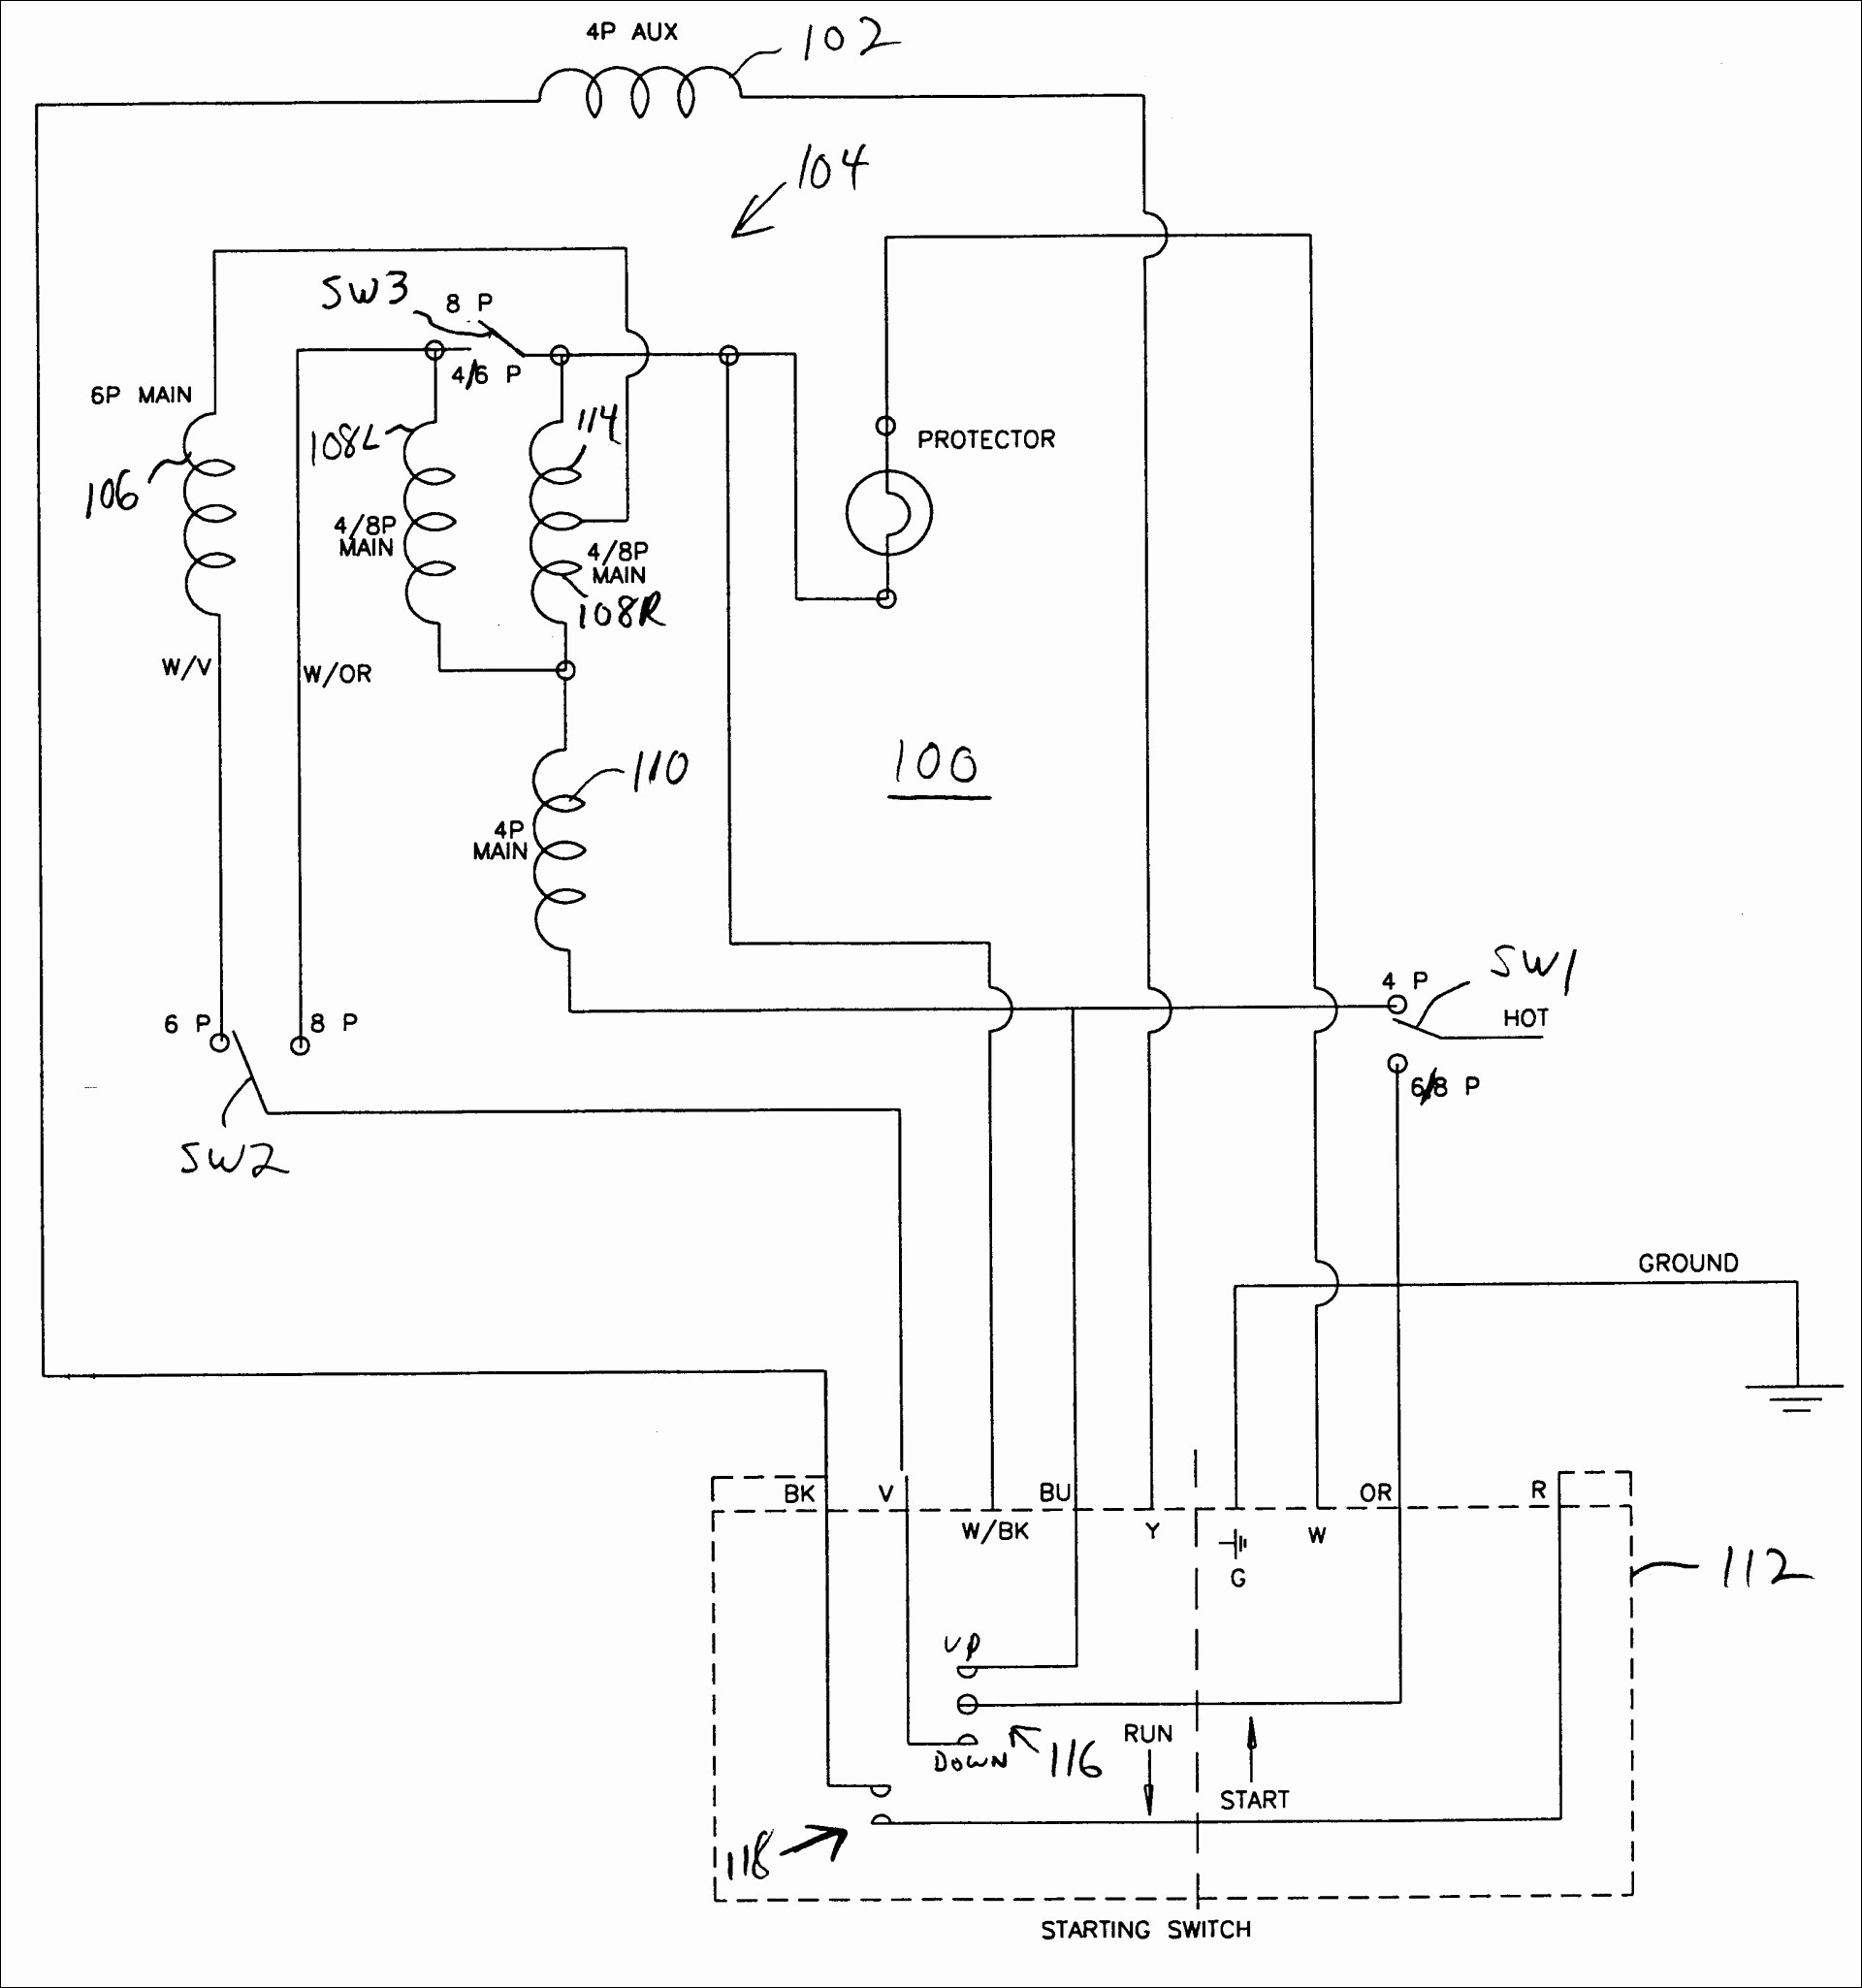 Gould Motor Wiring Diagram | Manual E-Books - Gould Century Motor Wiring Diagram